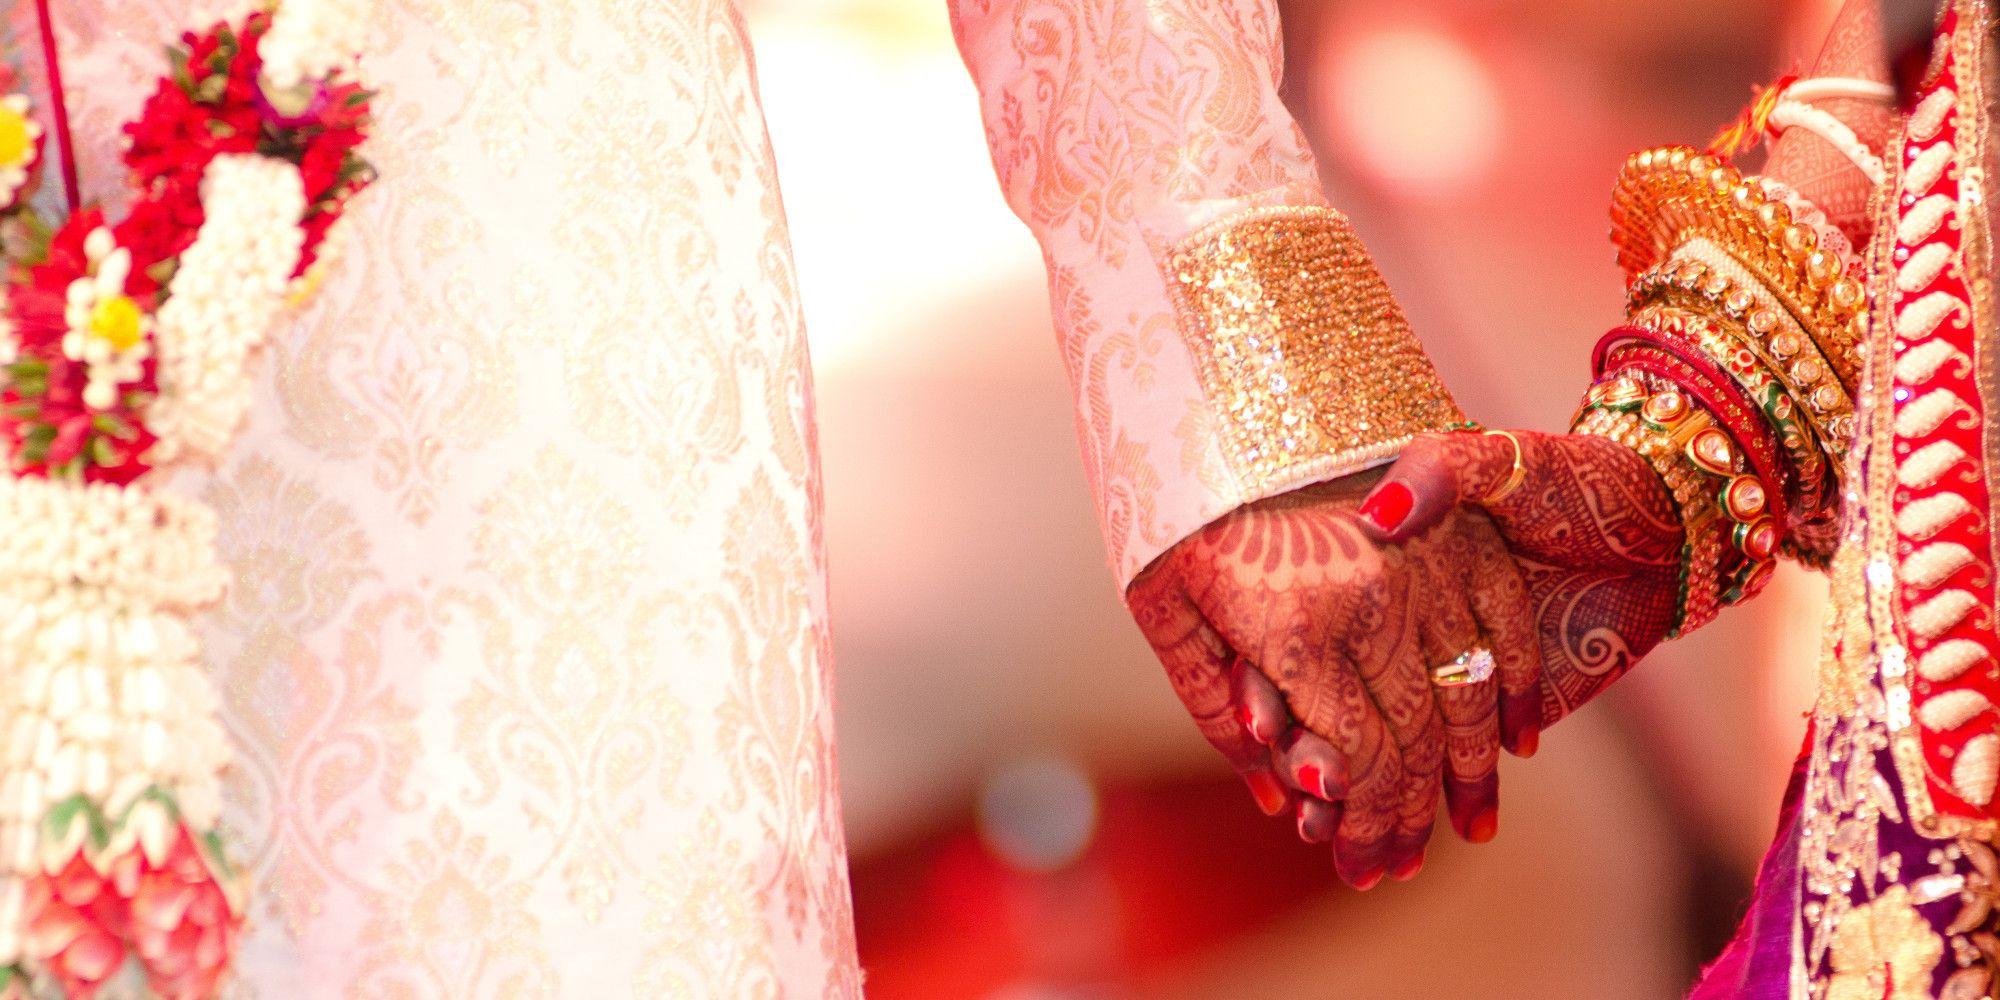 How to make your wedding special and memorable | Special wedding ...